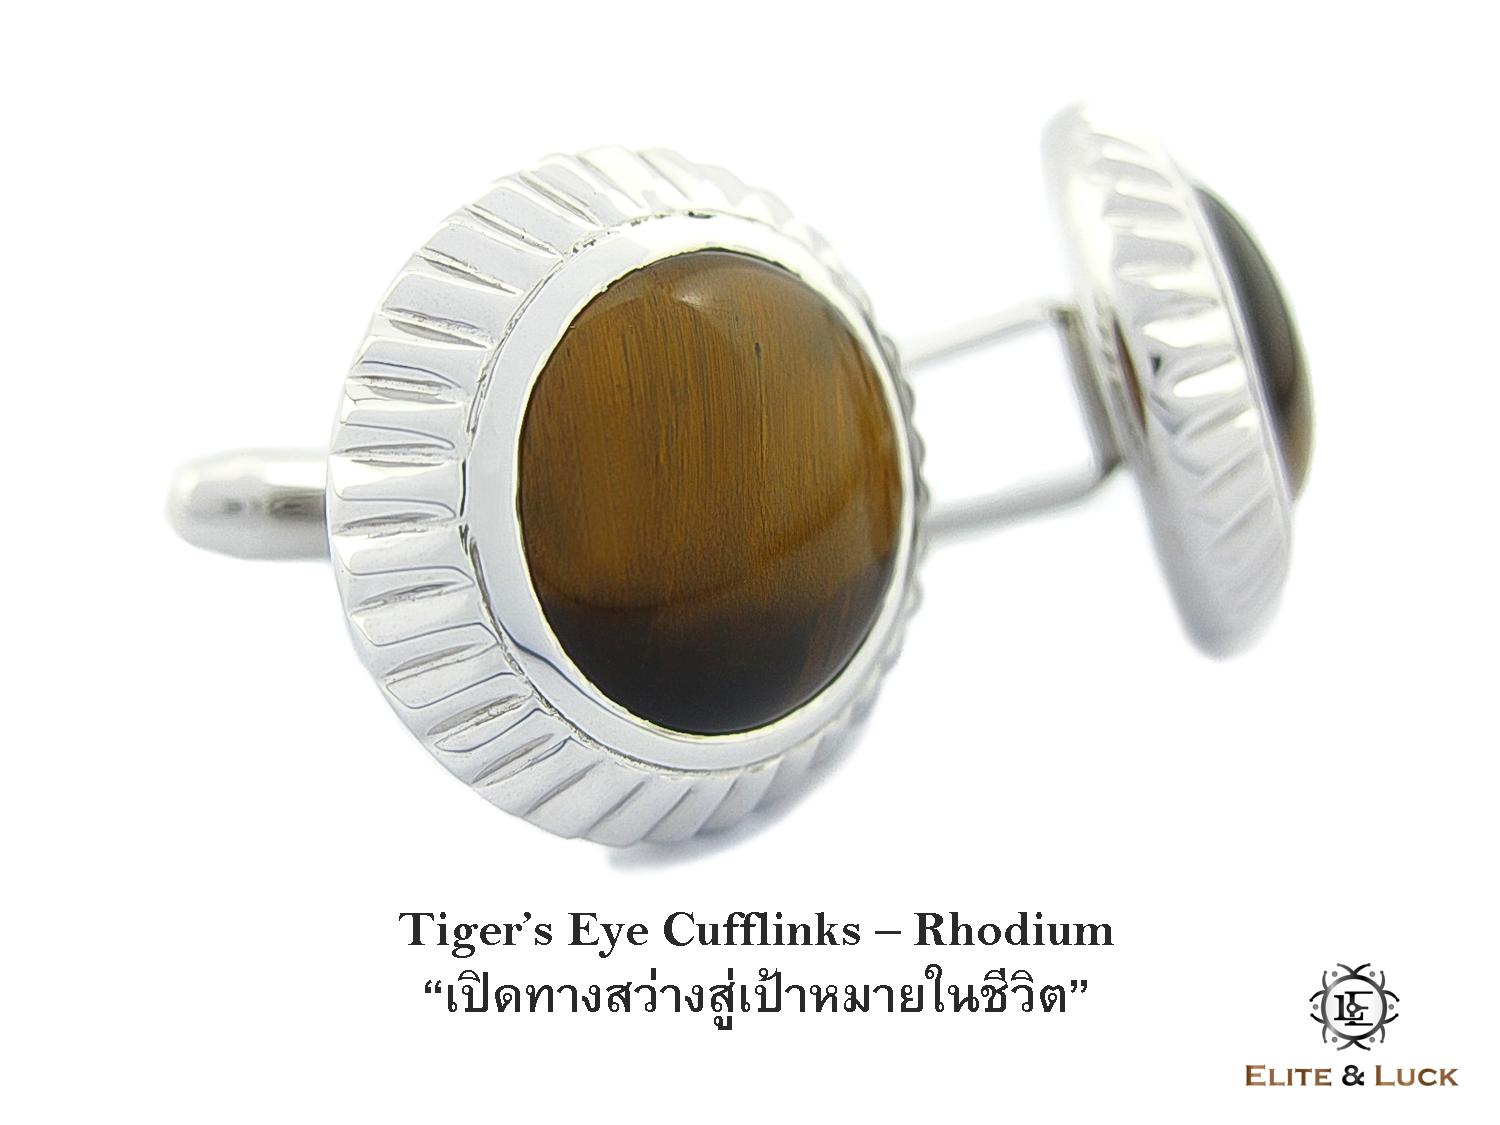 Tiger's Eye Sterling Silver Cufflinks สี Rhodium รุ่น Elegant